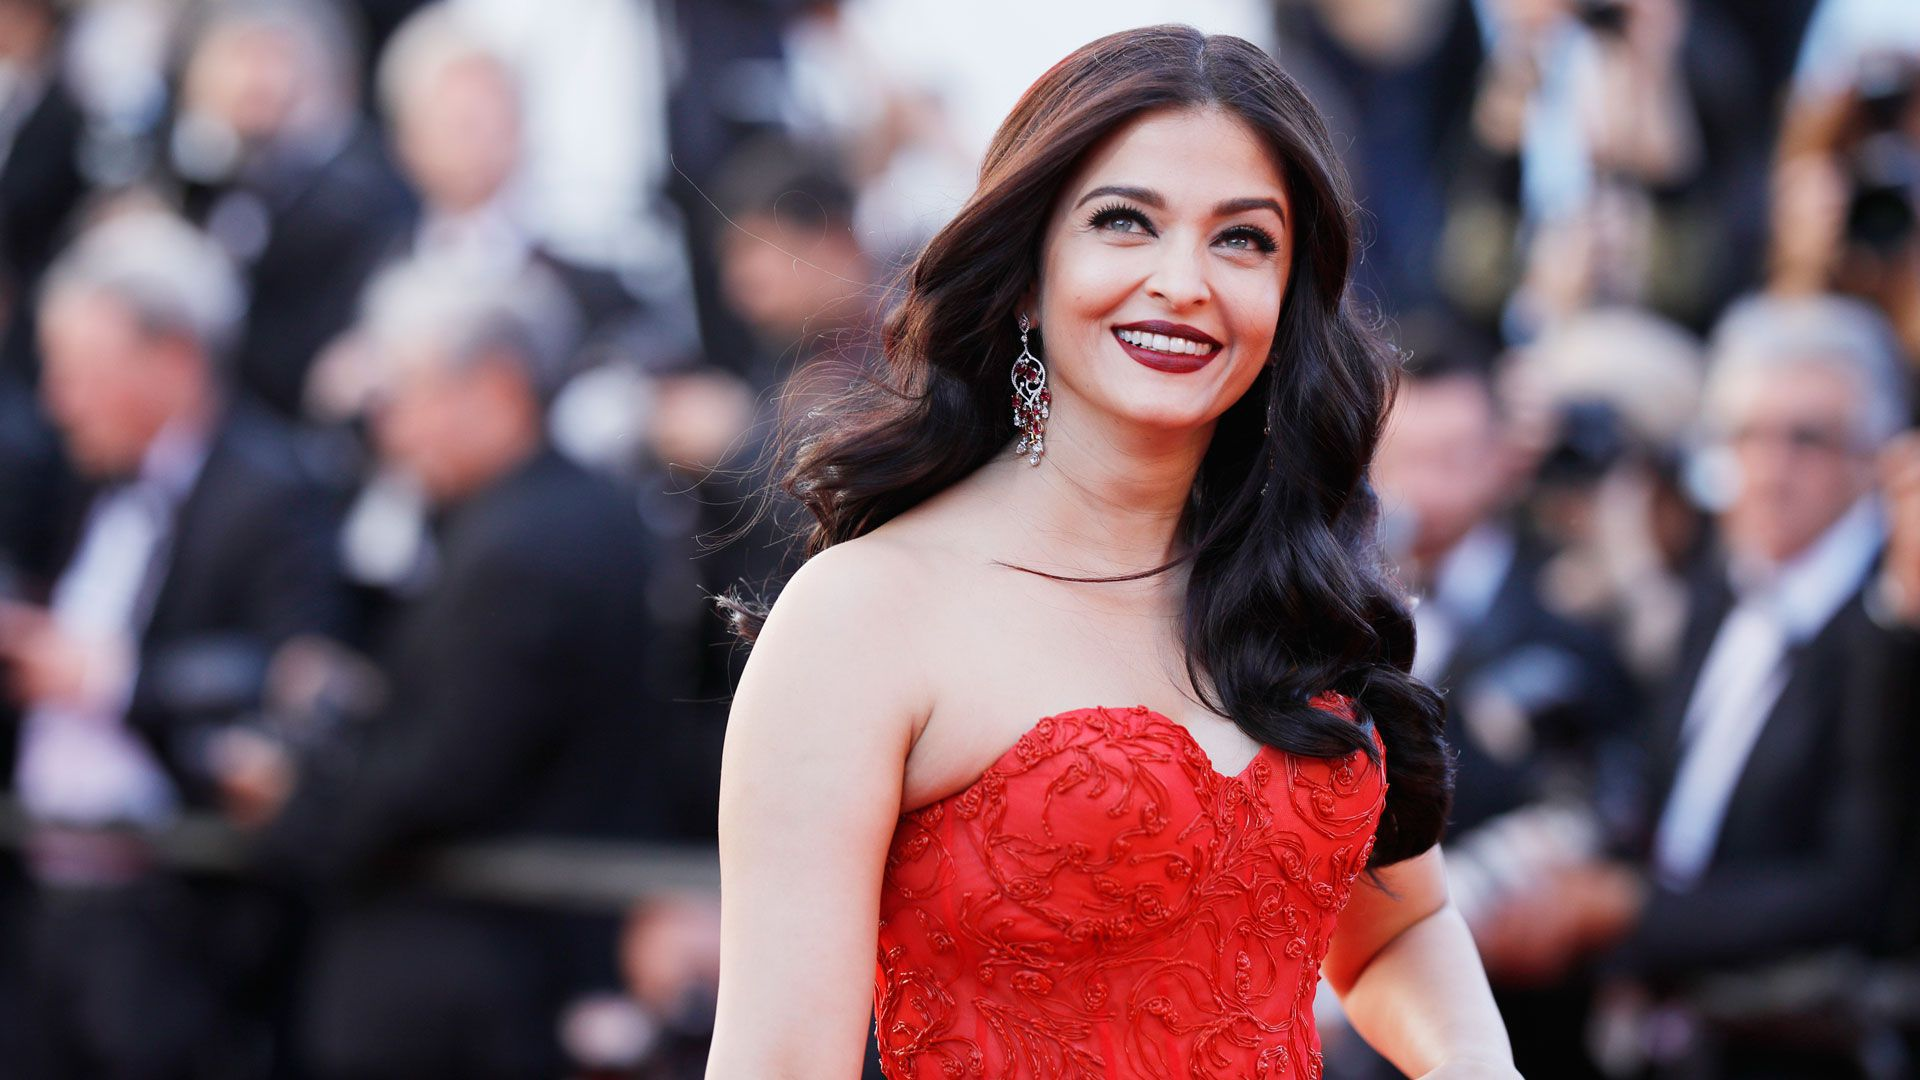 Aishwarya Rai Bachchan Wallpaper Pack